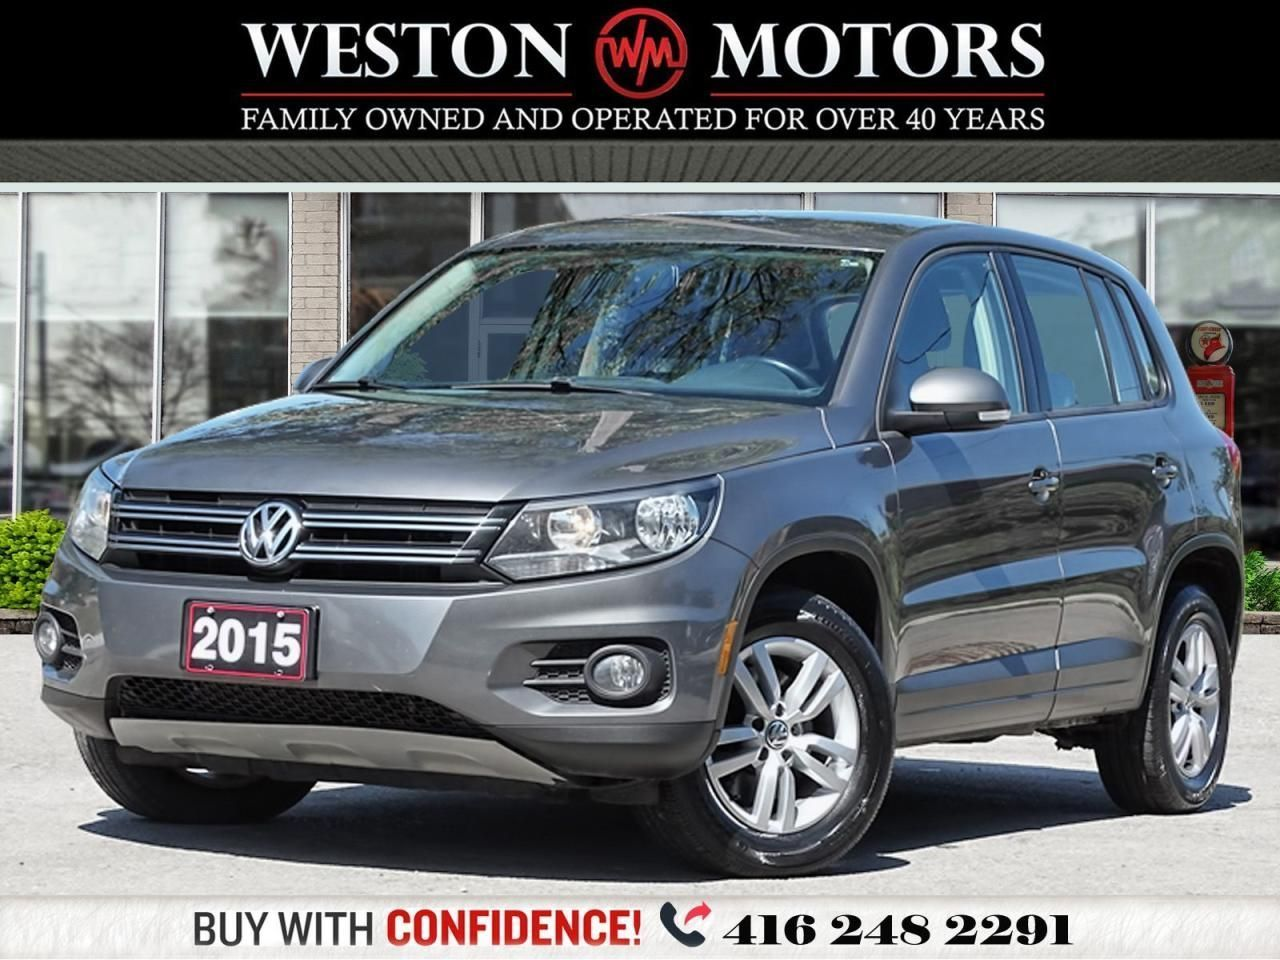 2015 Volkswagen Tiguan 2.0L*AWD*TSI*4MOTION*PRICED TO SELL!